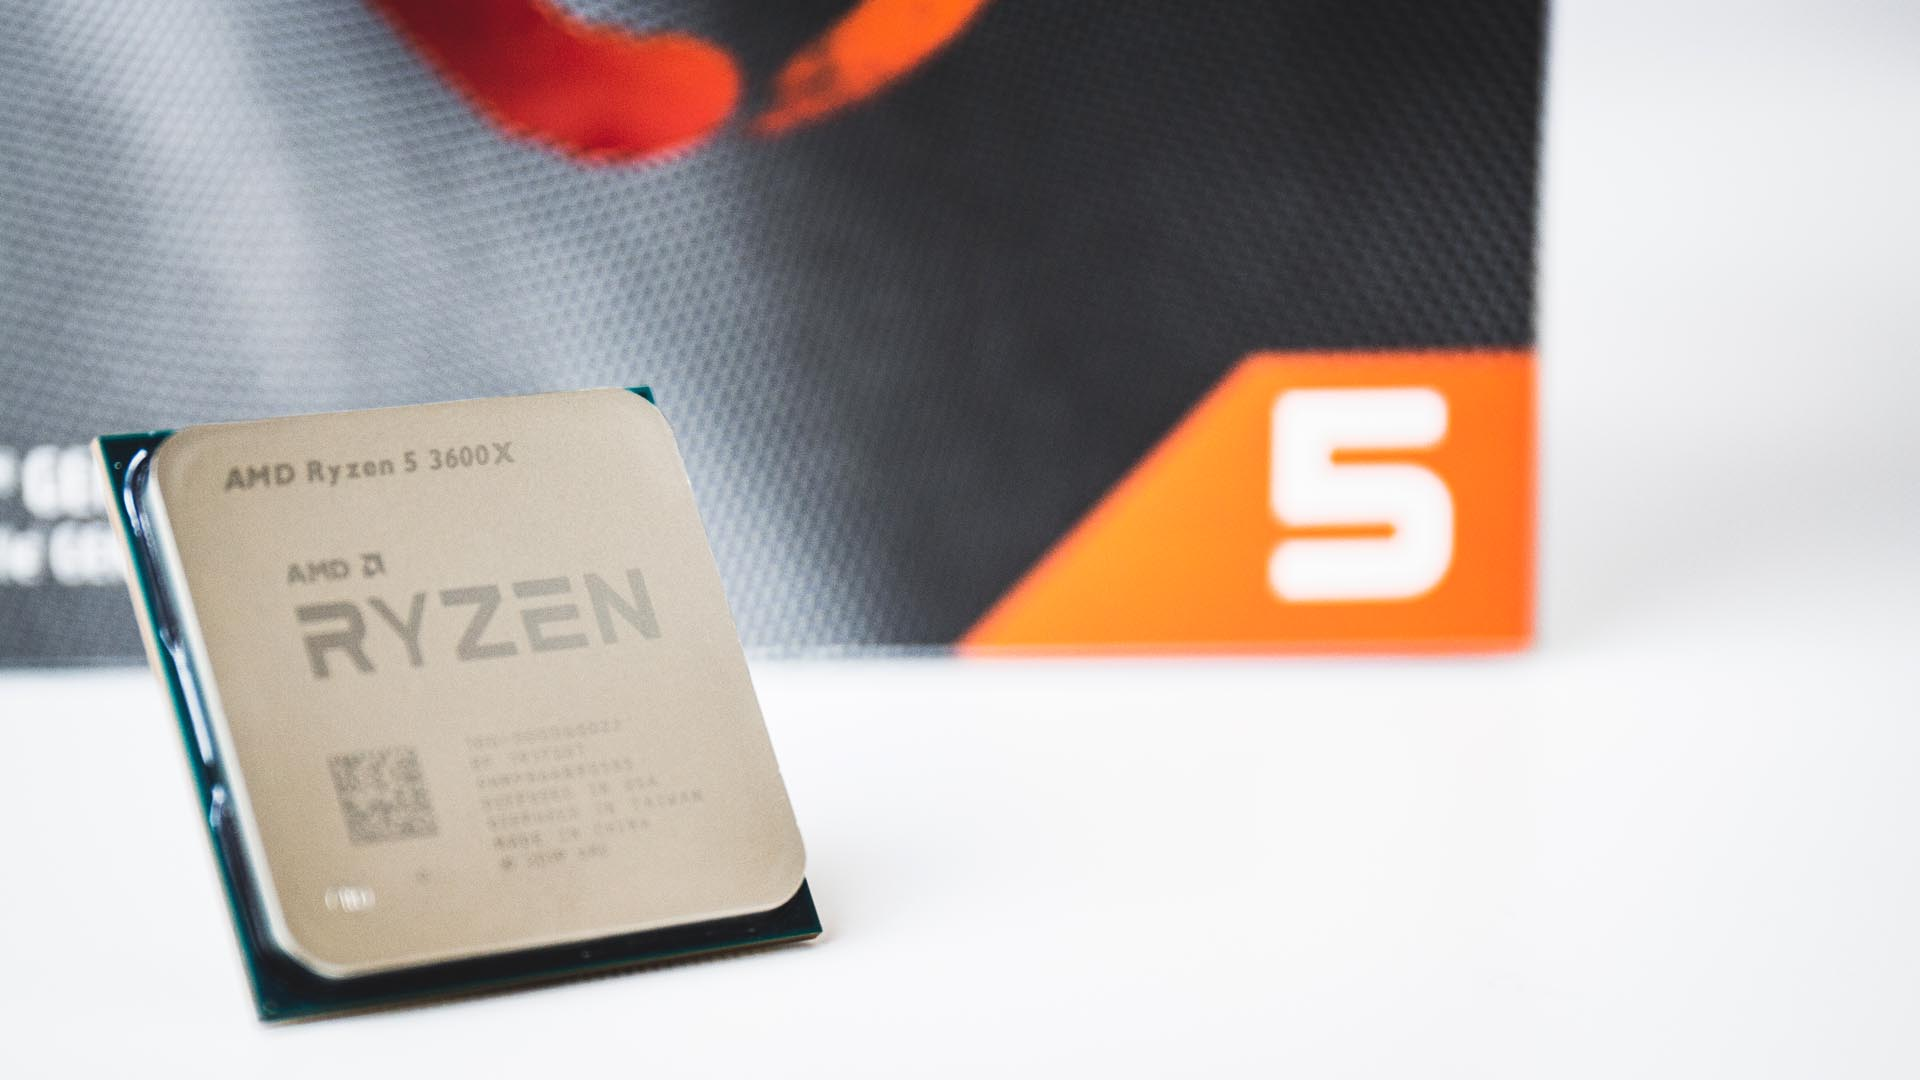 AMD Ryzen 5 3600X review: the X is expendable | PCGamesN